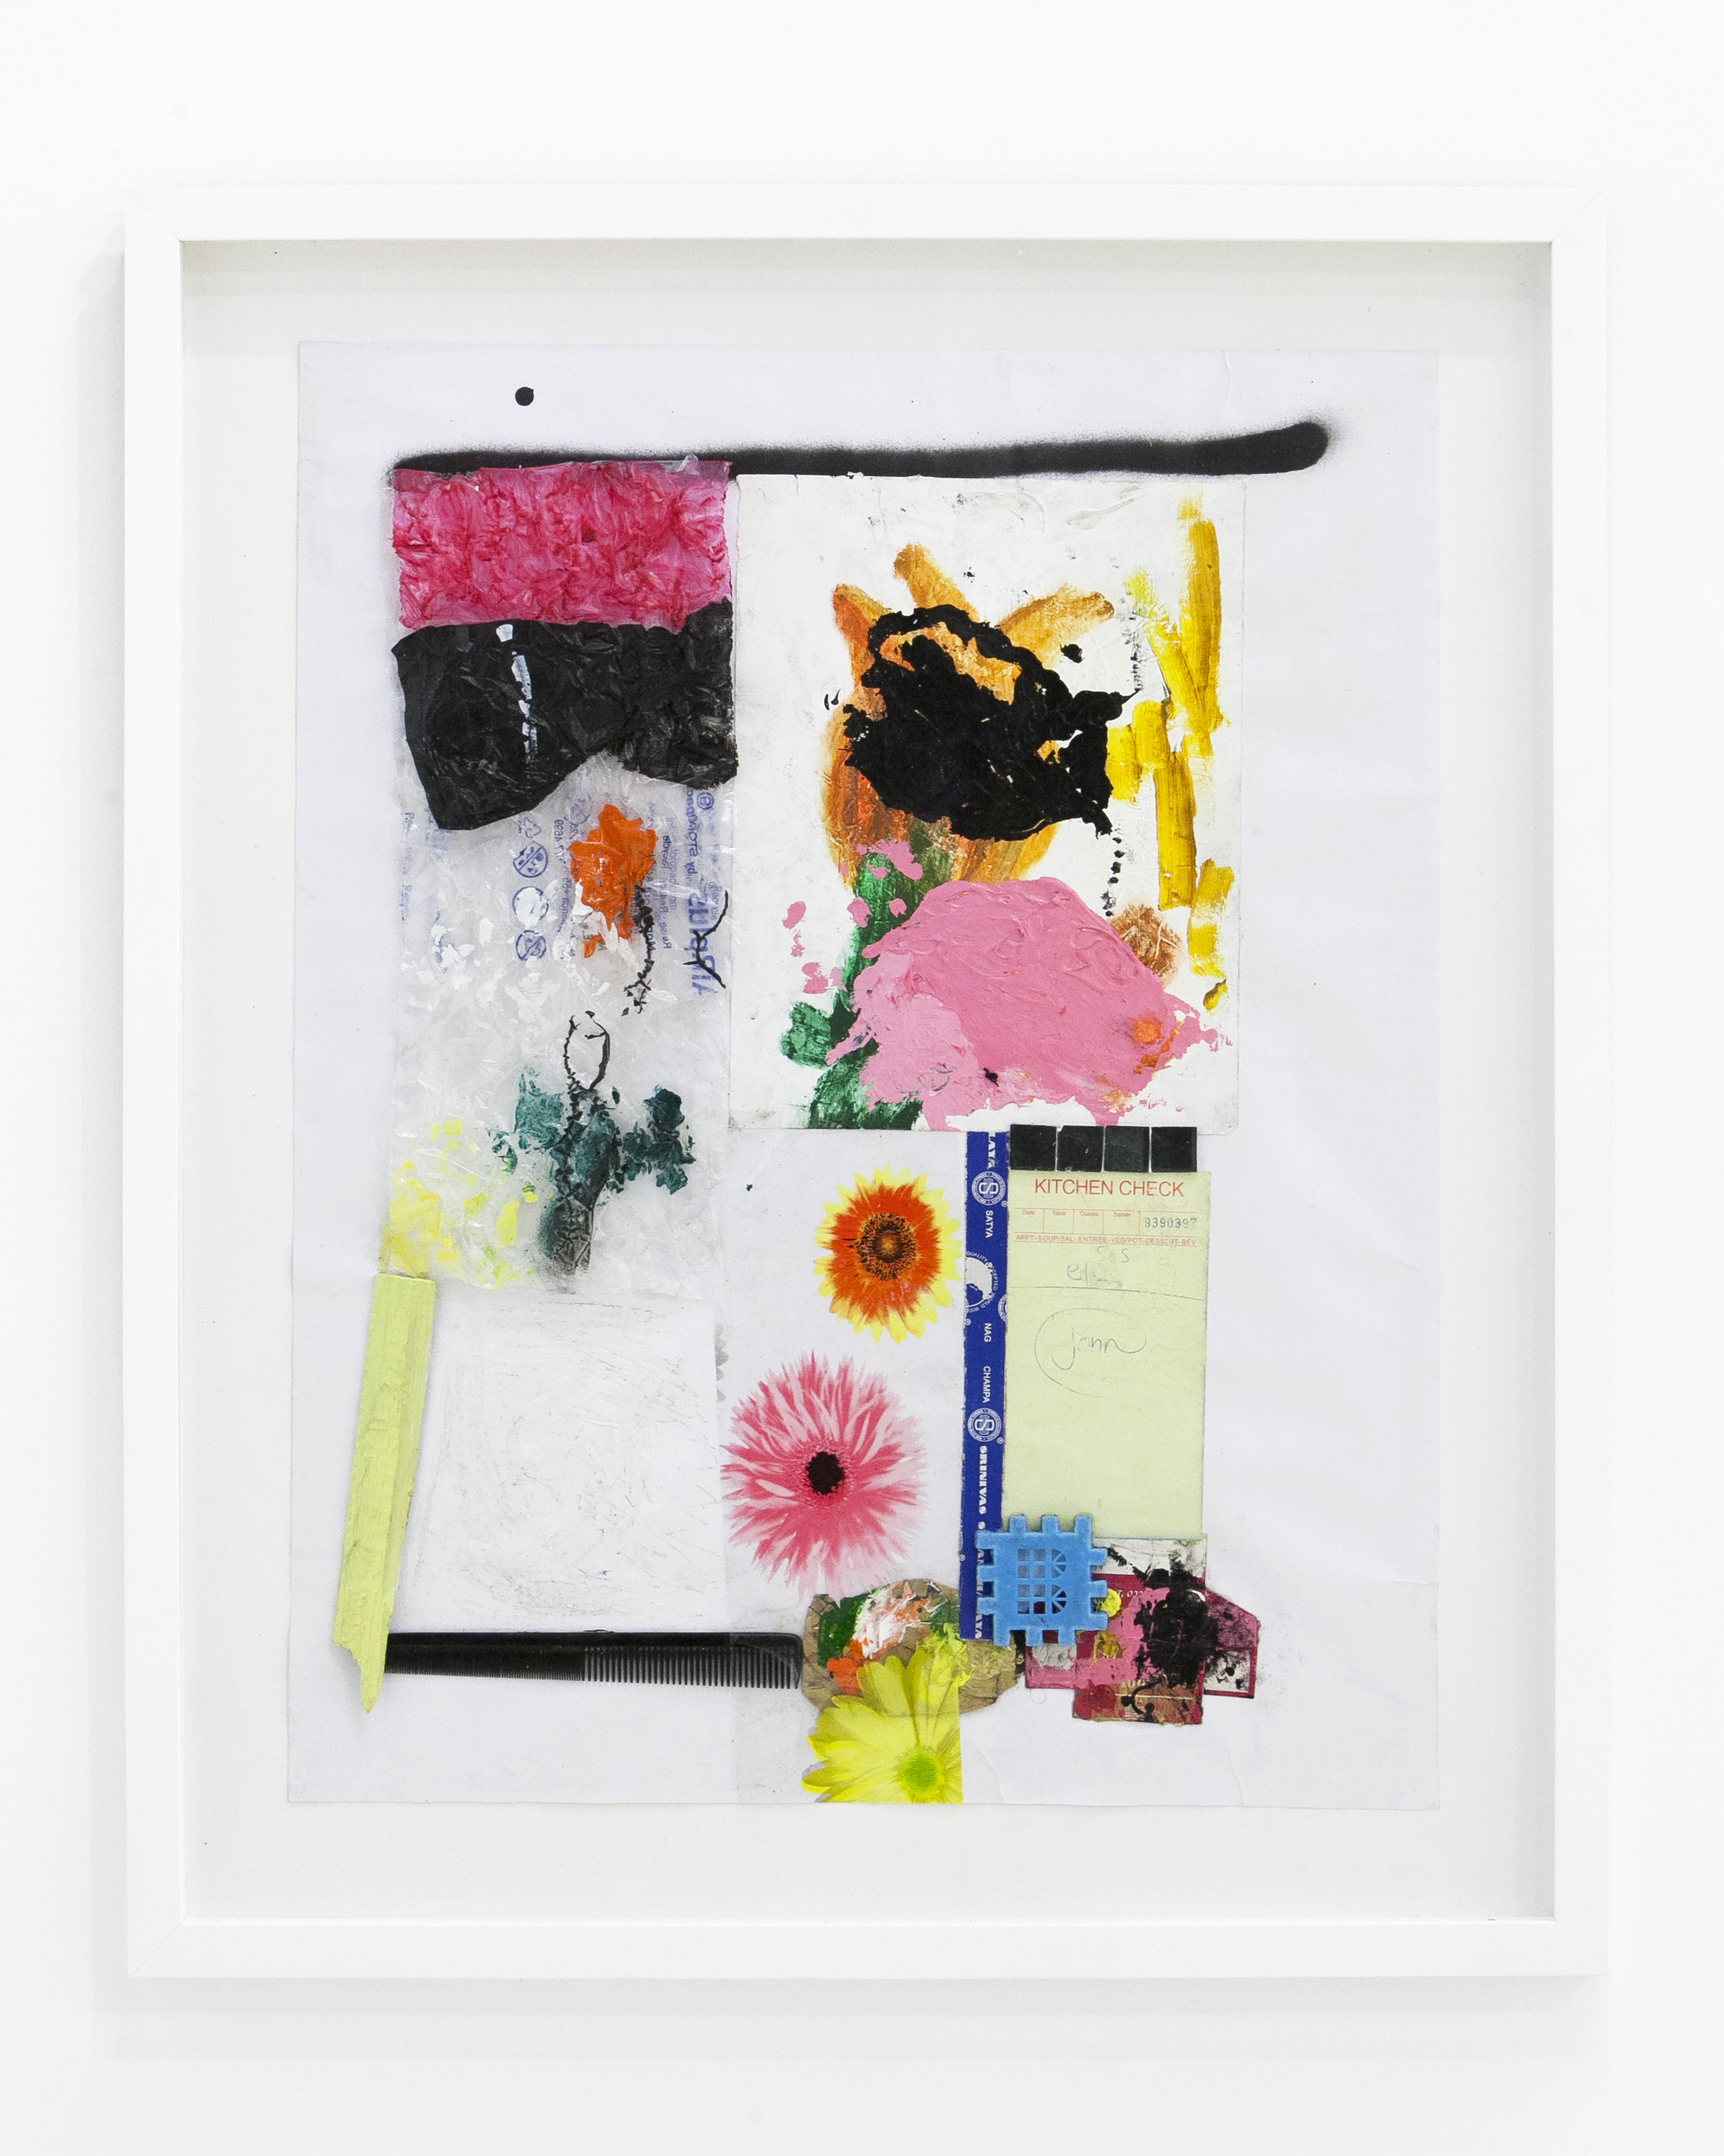 """Jan Gatewood -  """"Cypress Park""""  Acrylic, Spray Paint, Nail Polish, Plastic, Cardboard, Wood, Paper, Comb, Glass, Tiles, Spiderweb, Tablecloth, & Gesso on Paper. 16.5 x 14 Inches. Framed. 2018."""